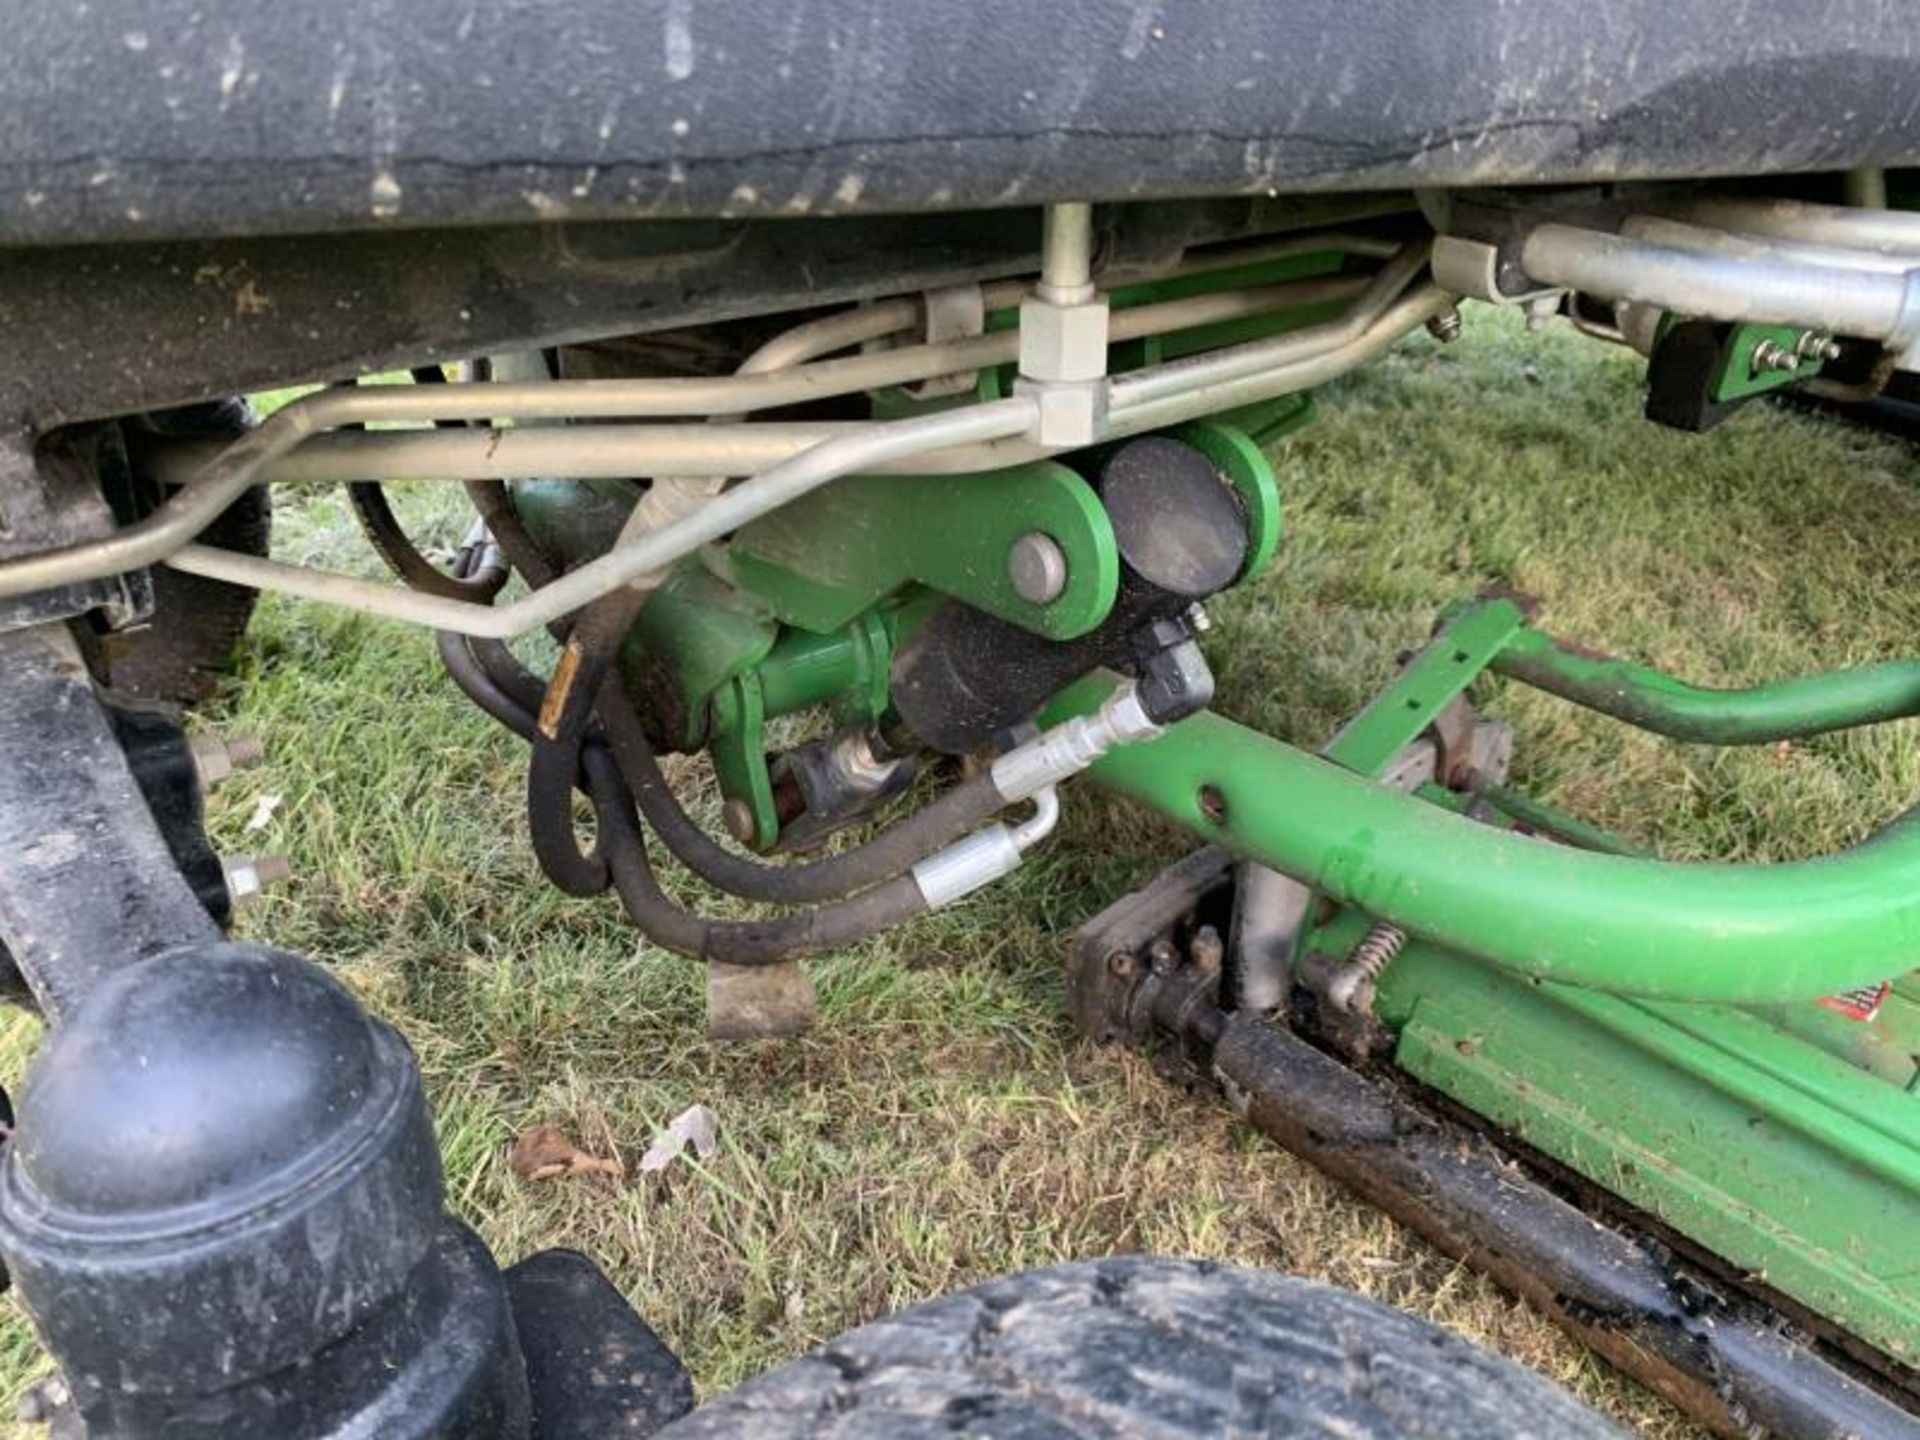 2016 John Deere 7500A Precision Cut 2WD T4, 2,355 Hours, SN: 1TC750AVLGR030141 - Image 3 of 17